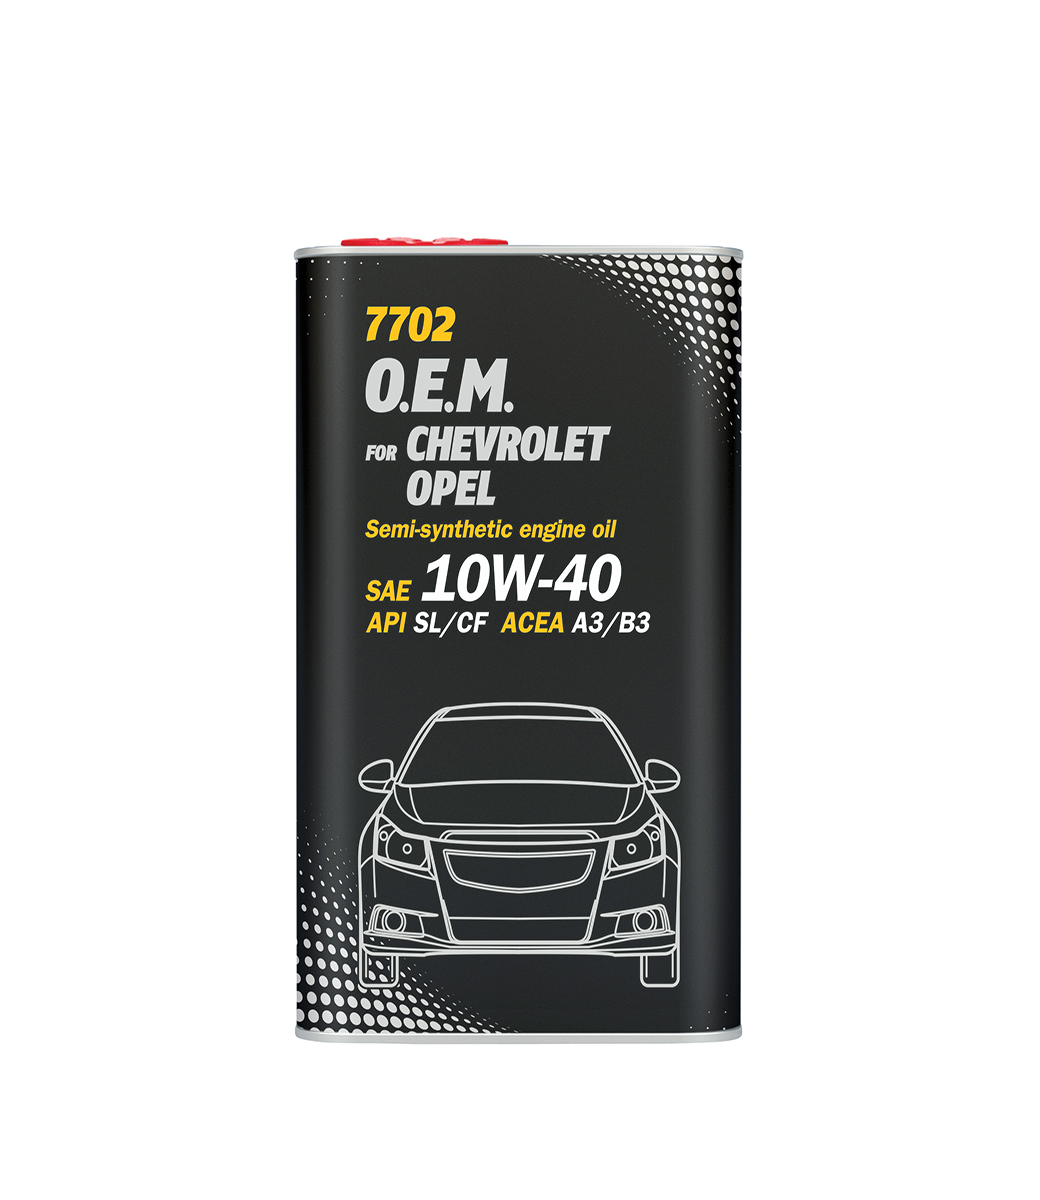 O.E.M. for Chevrolet Opel 10W-40